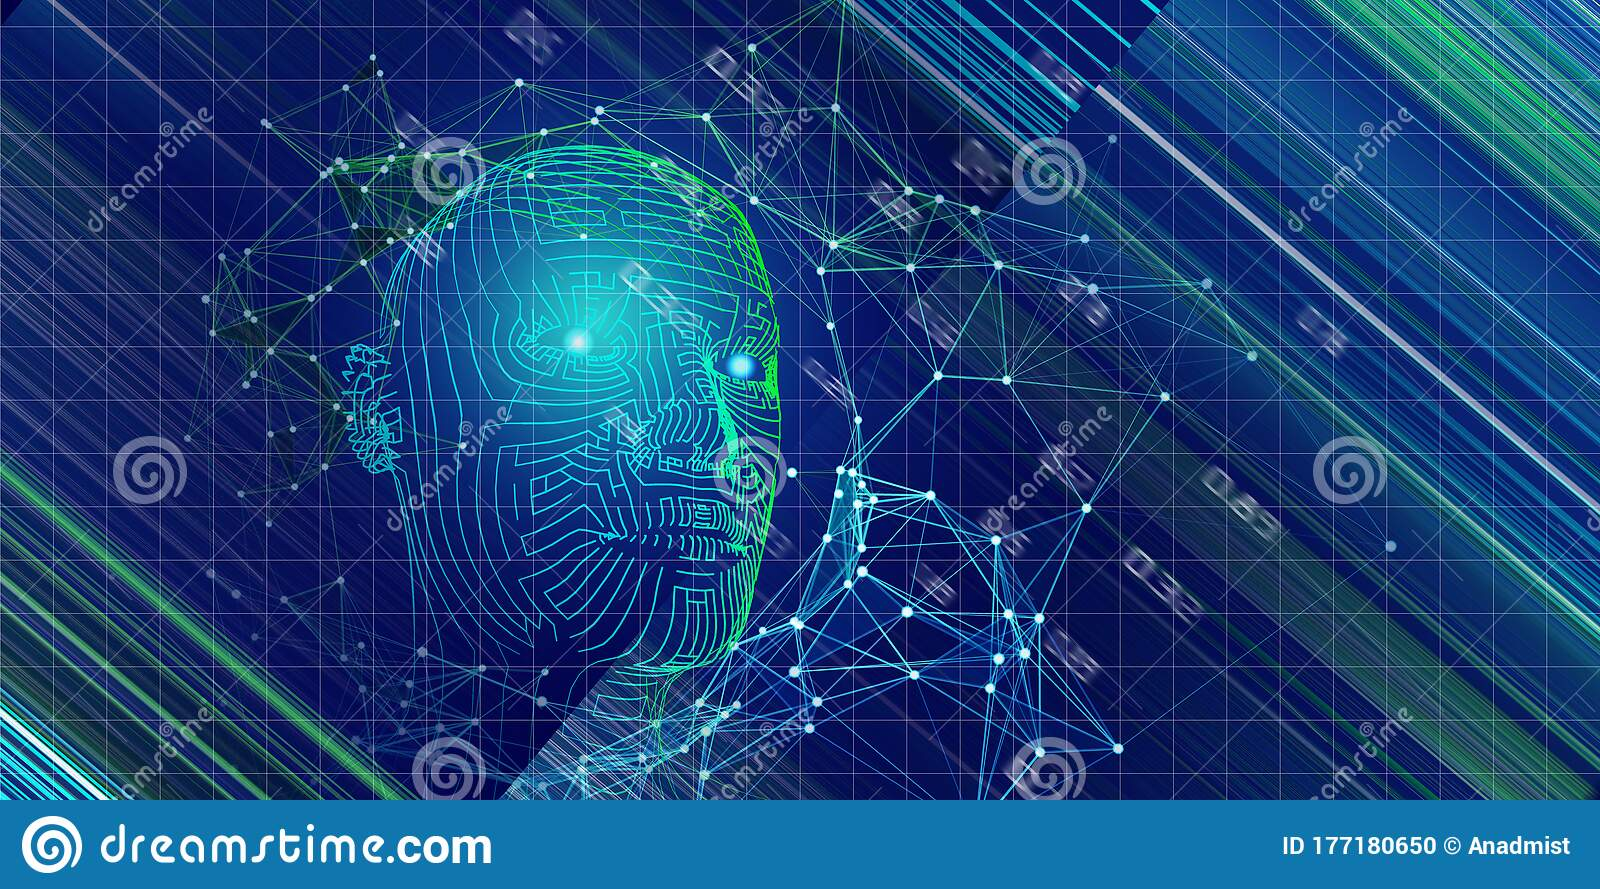 Technology Background Of 3d Grid Head With Blurred Lines